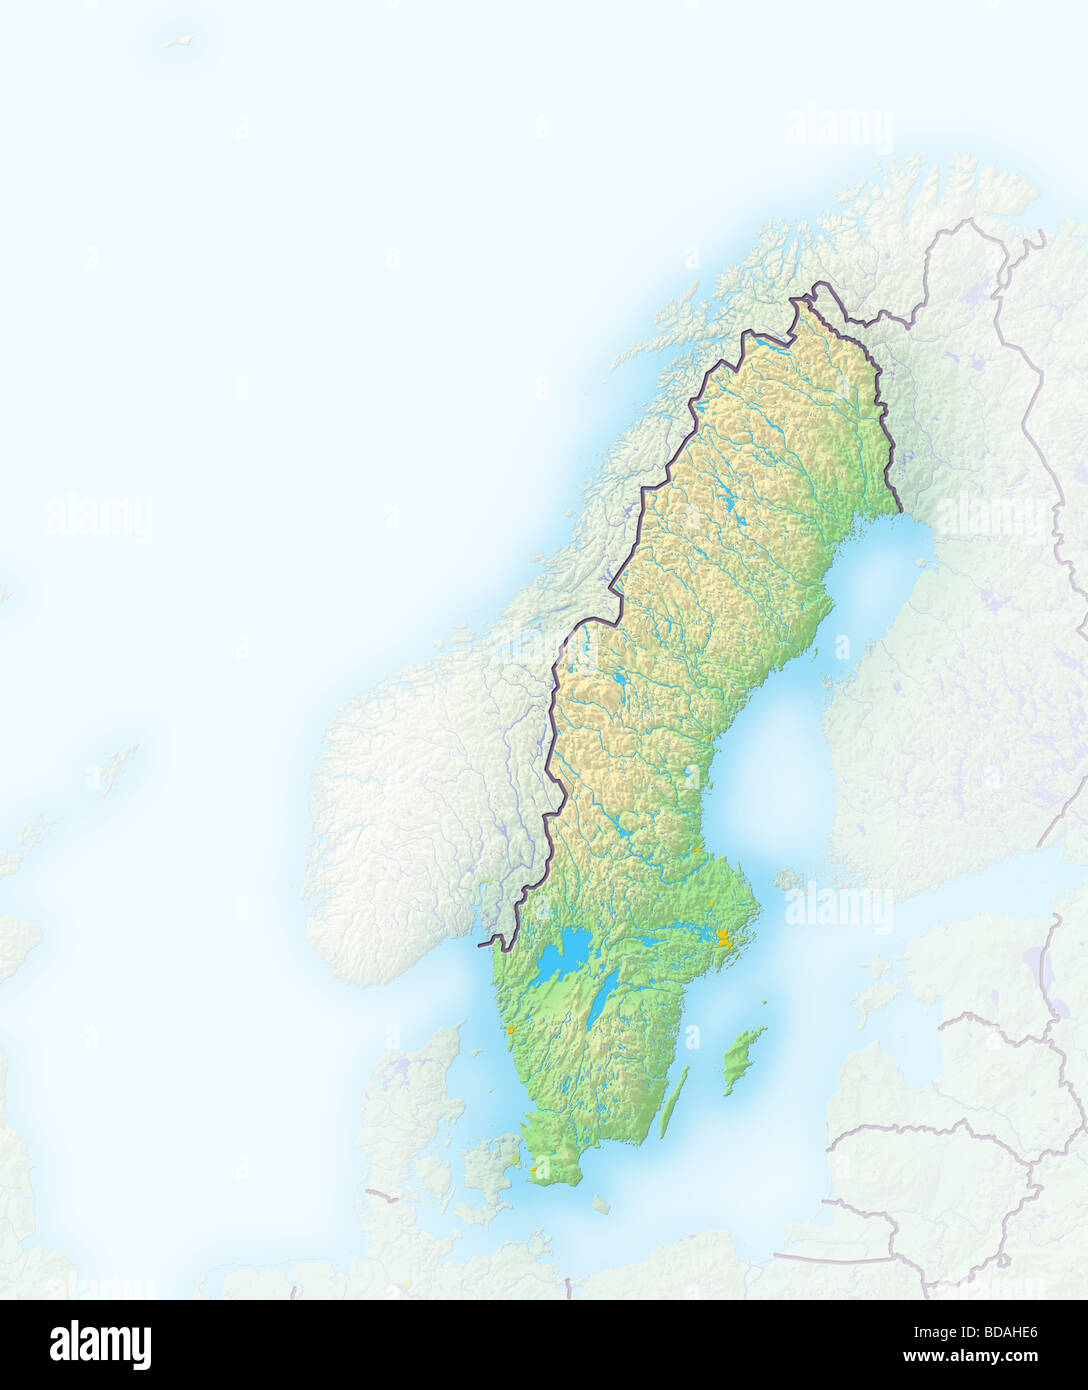 Sweden Shaded Relief Map Stock Photo Royalty Free Image - Sweden relief map